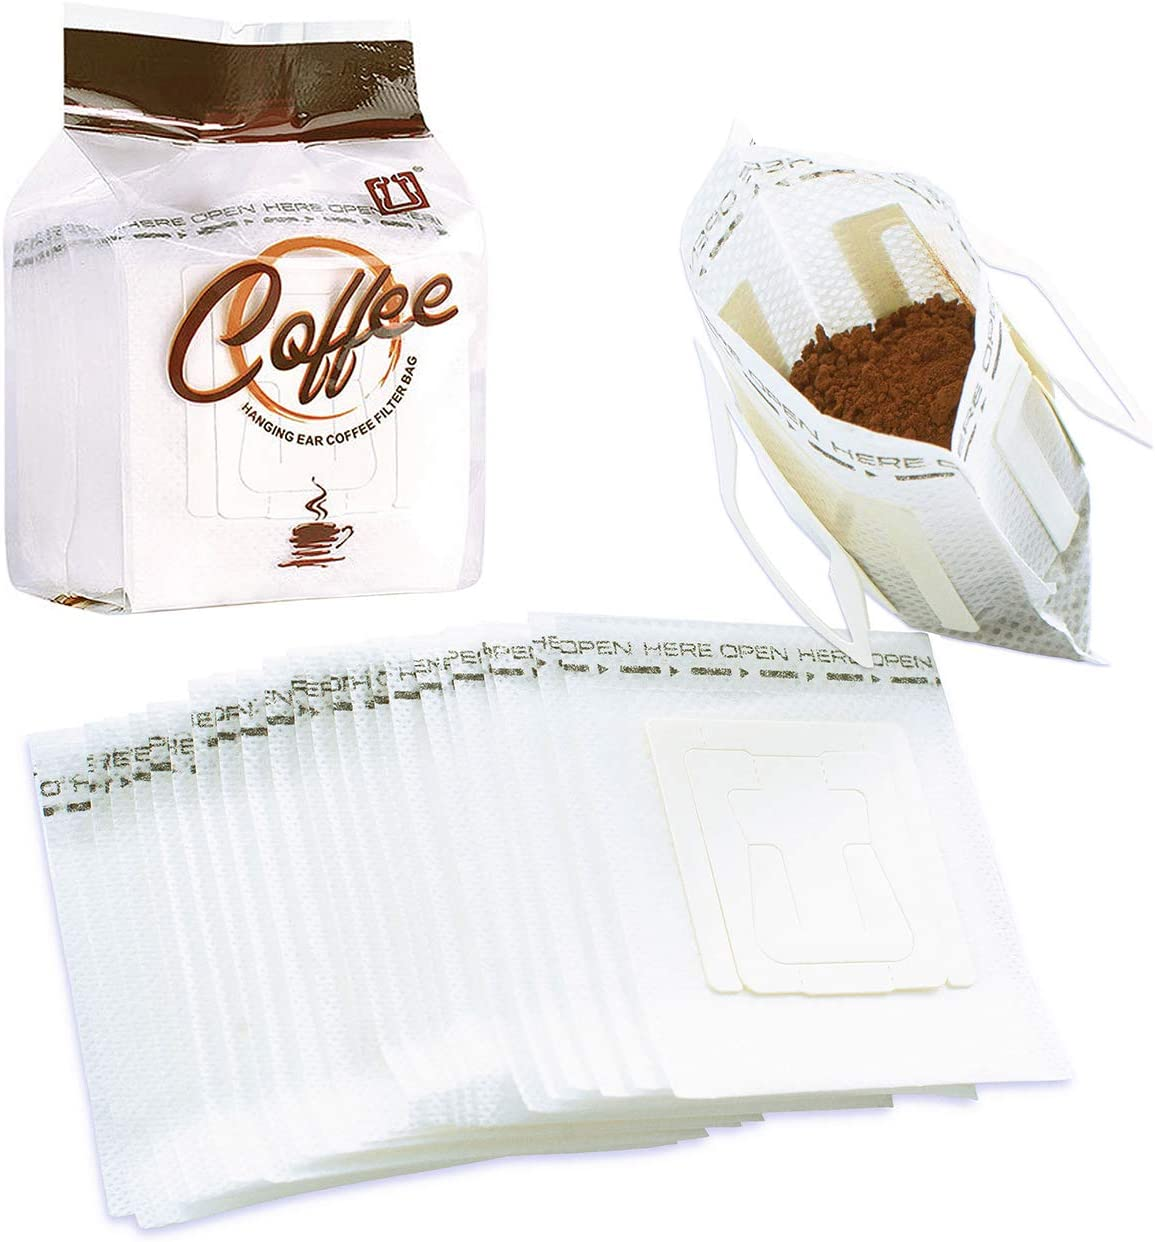 CIOEY 50Pcs Portable Coffee Filter Paper Bag Hanging Ear Drip Coffee Tea Packets Single Serve Disposable Drip Coffee Filter Bag Food Grade Perfect for Home, Office, Travel, Camping 3.5 x 3in